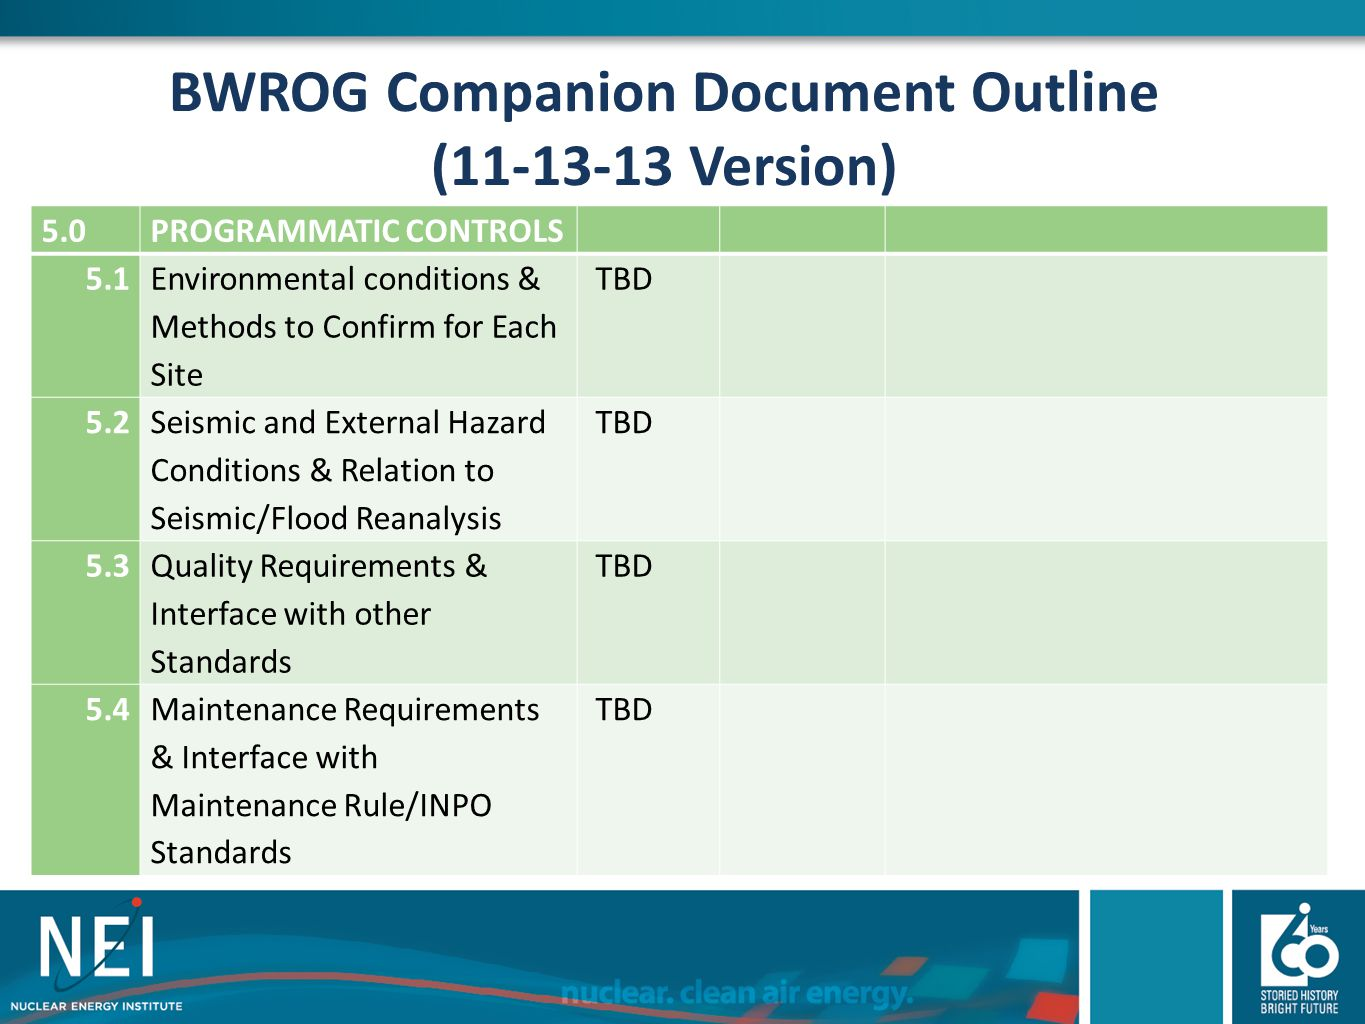 BWROG Companion Document Outline (11-13-13 Version)